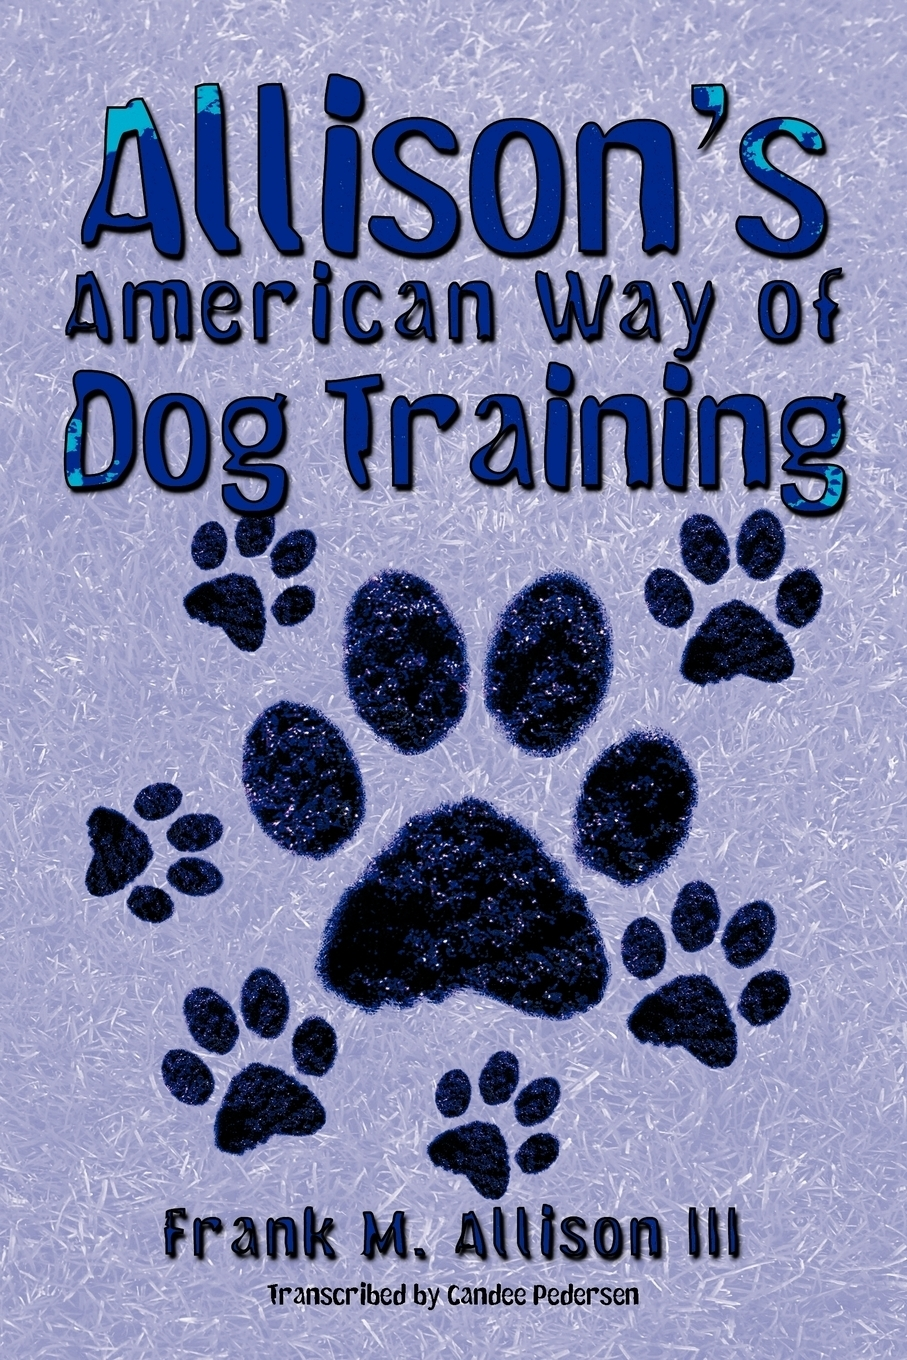 Frank M. Allison III. Allison's American Way of Dog Training